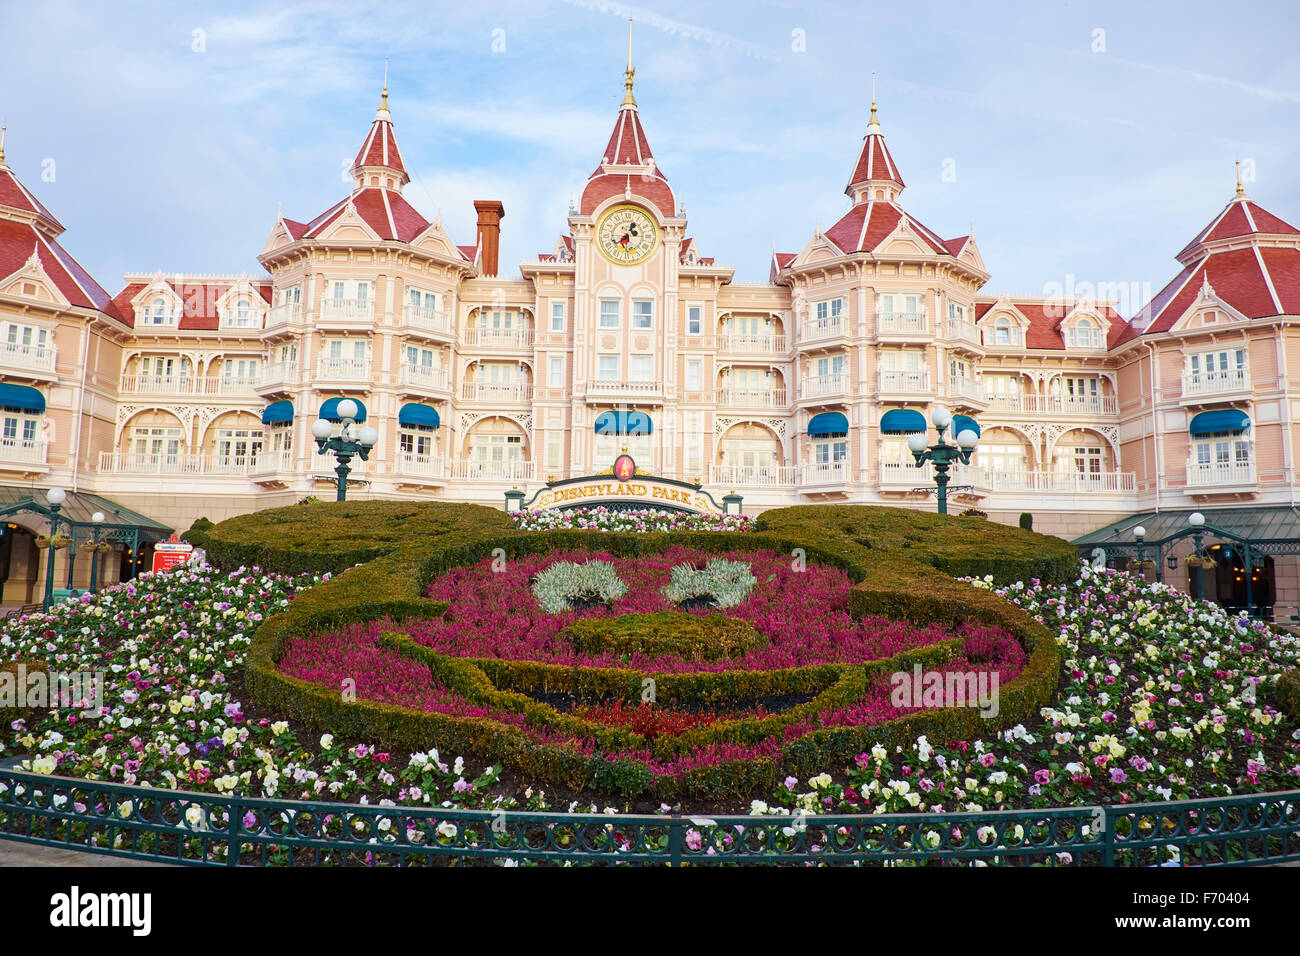 the disneyland hotel and entrance to disneyland paris marne la vallee stock photo royalty free. Black Bedroom Furniture Sets. Home Design Ideas